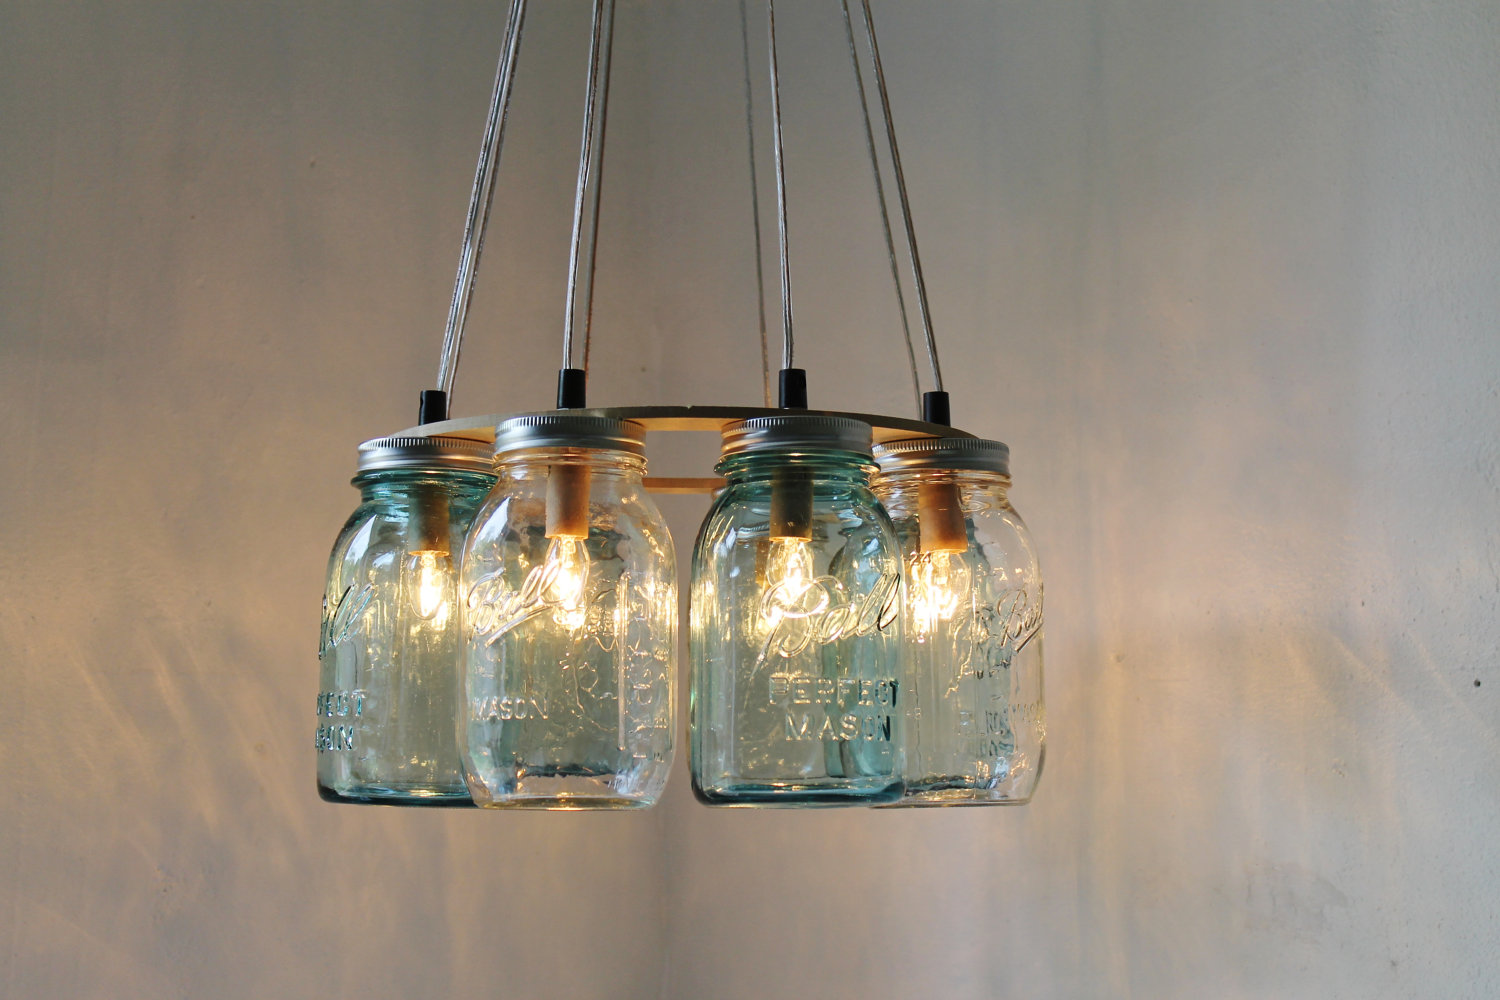 jar lighting fixtures. Unique Hand-made Pendant Lamp From Some Mason Jars Jar Lighting Fixtures B